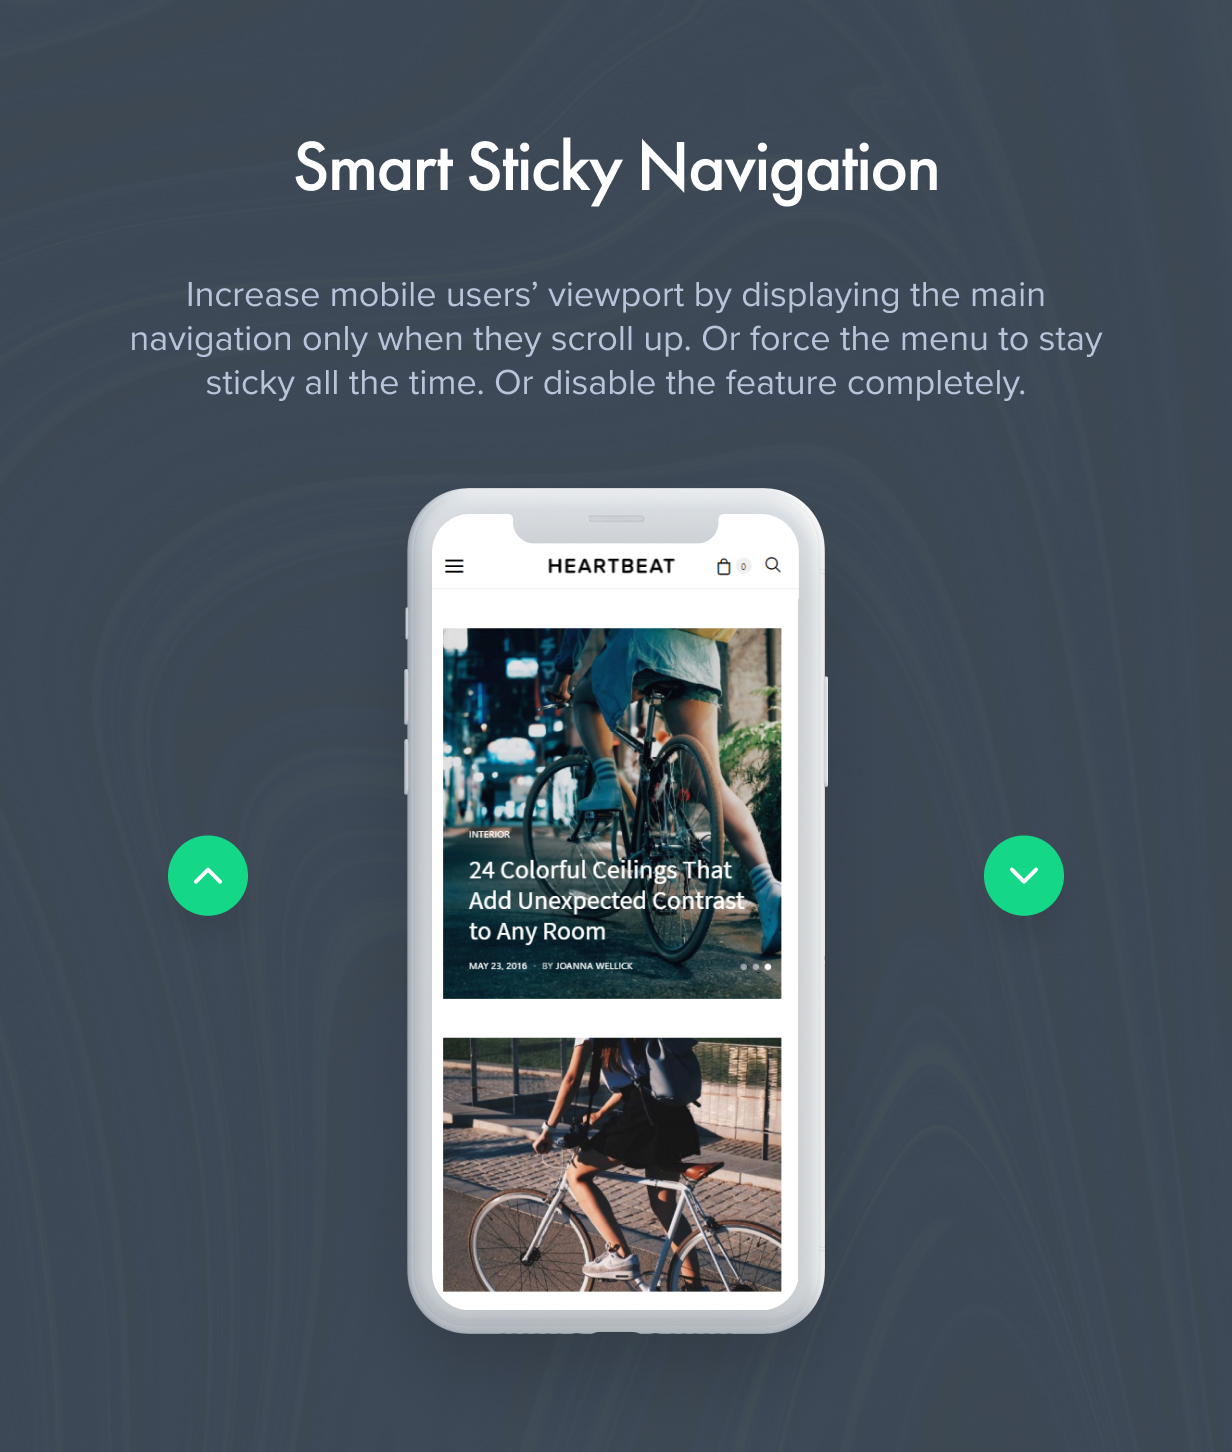 smart sticky navigation - Authentic - Lifestyle Blog & Magazine WordPress Theme